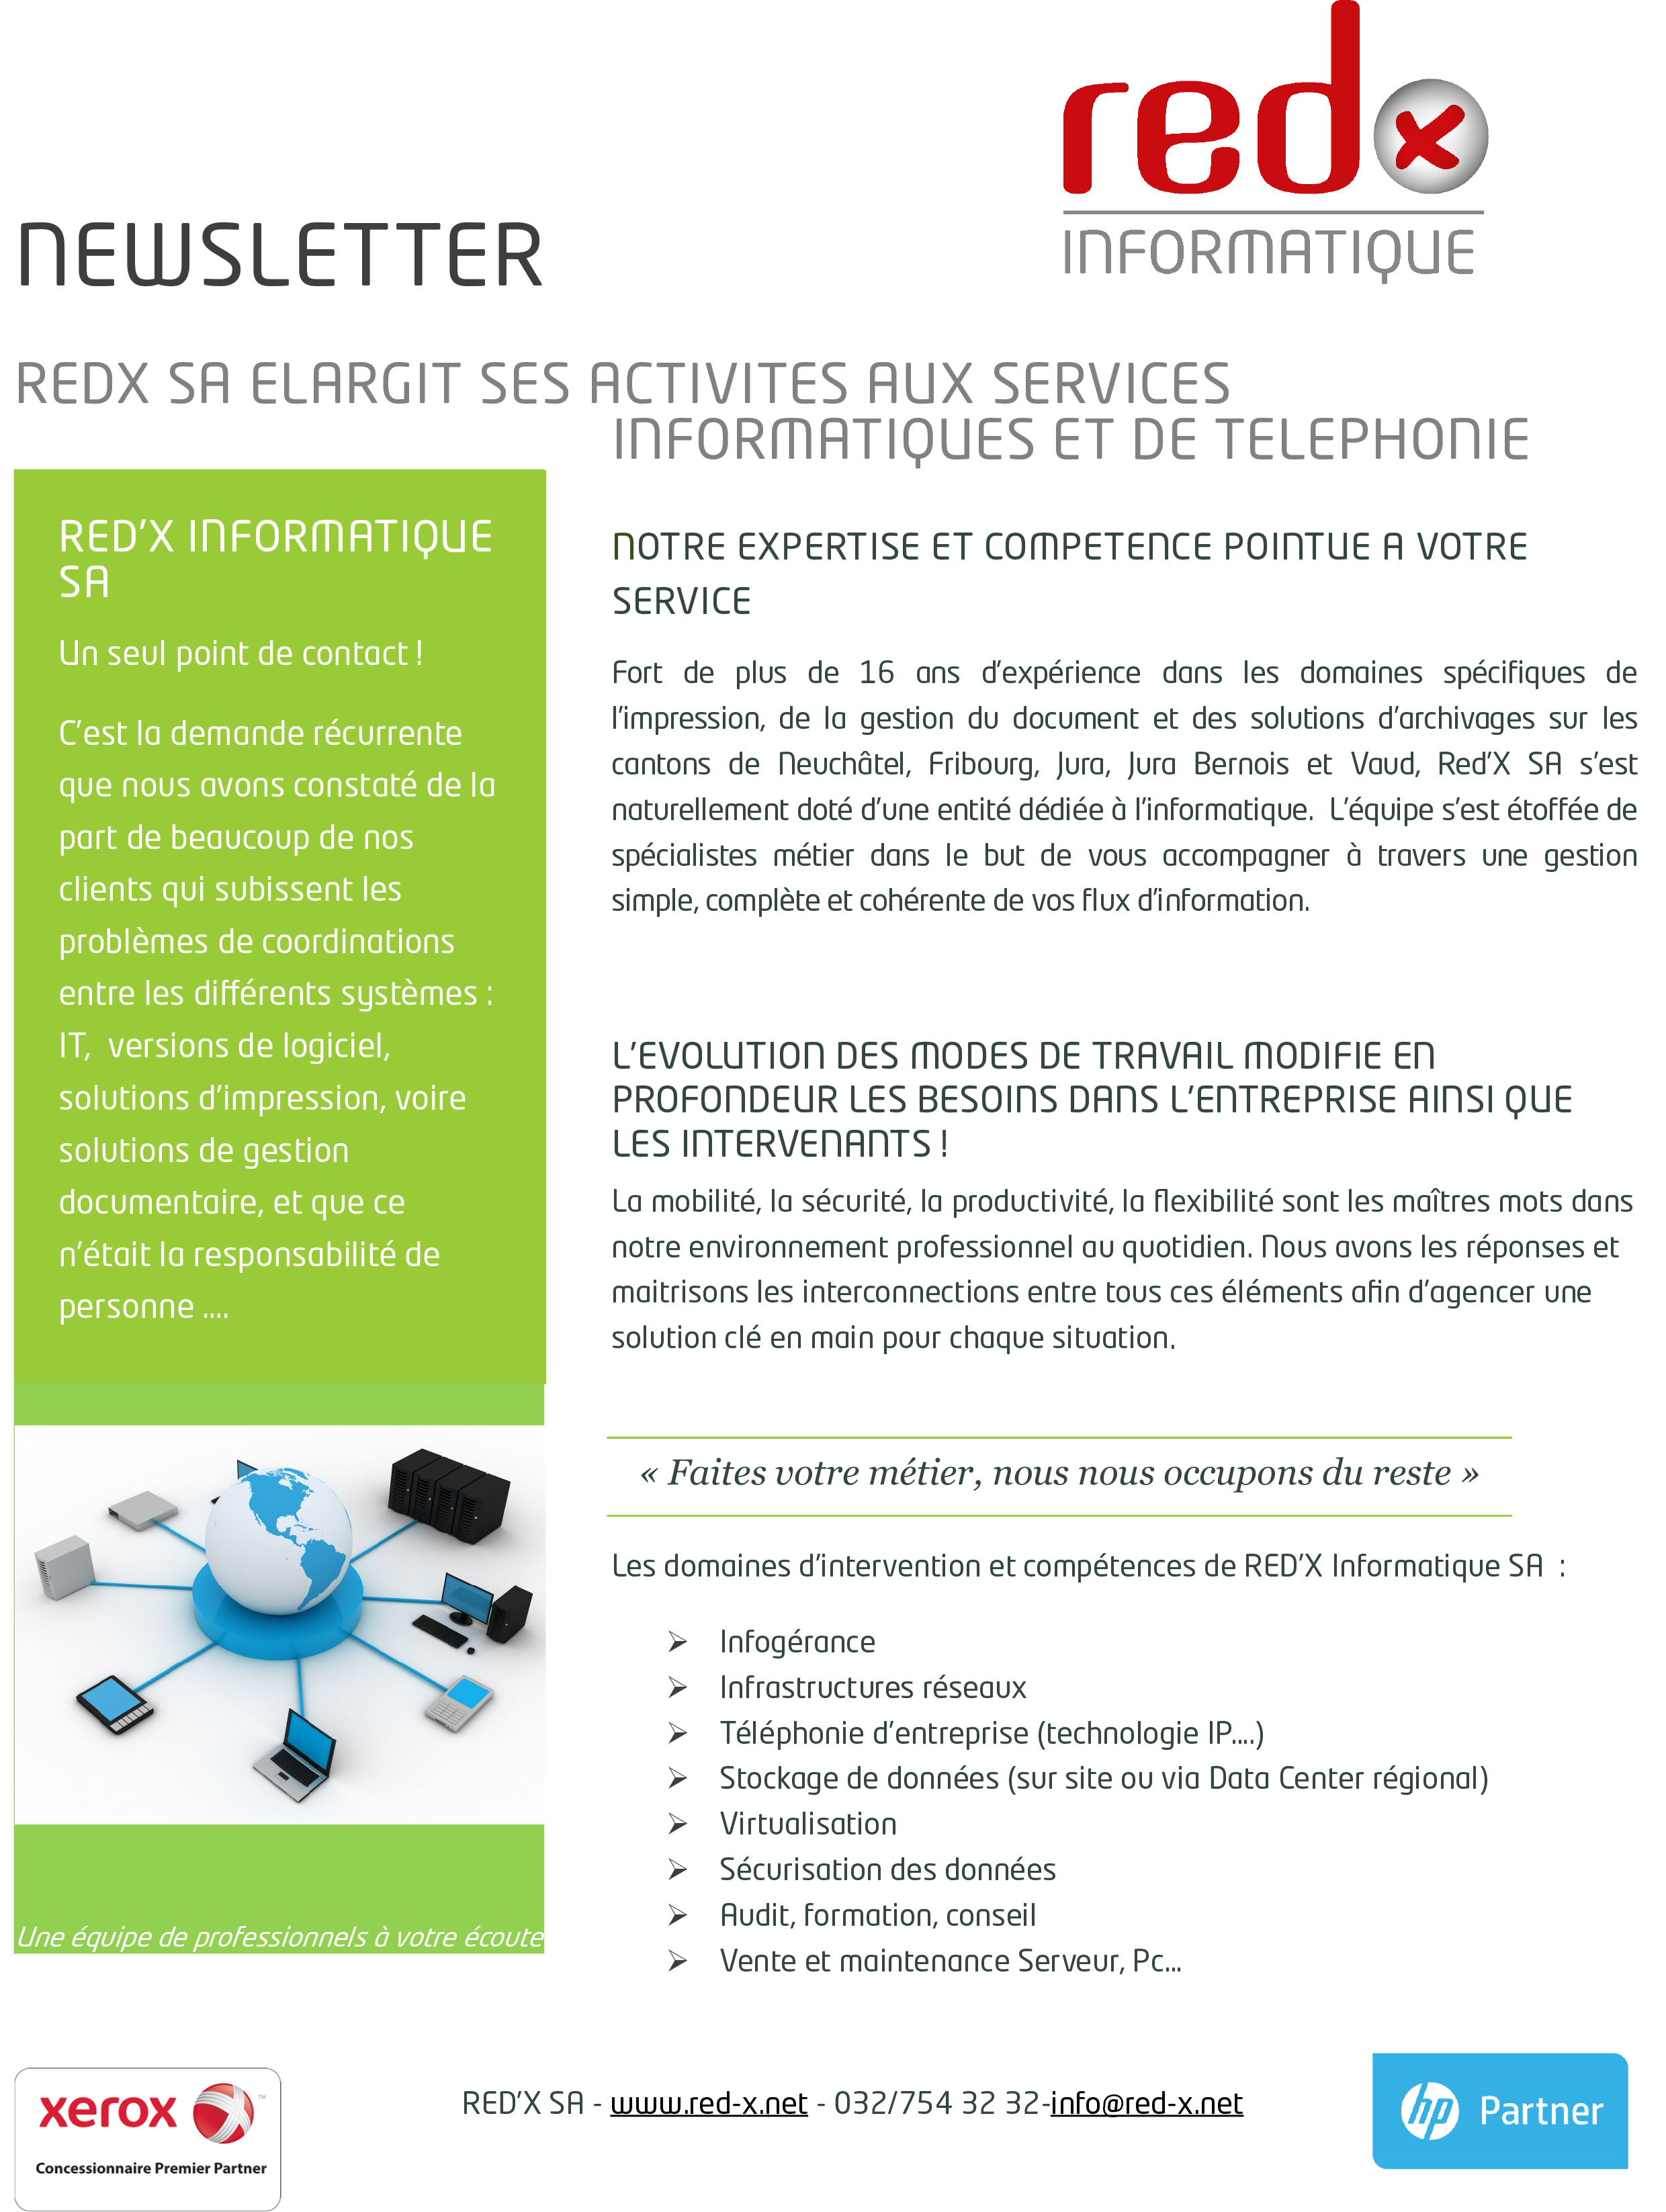 Newsletter REDX informatique